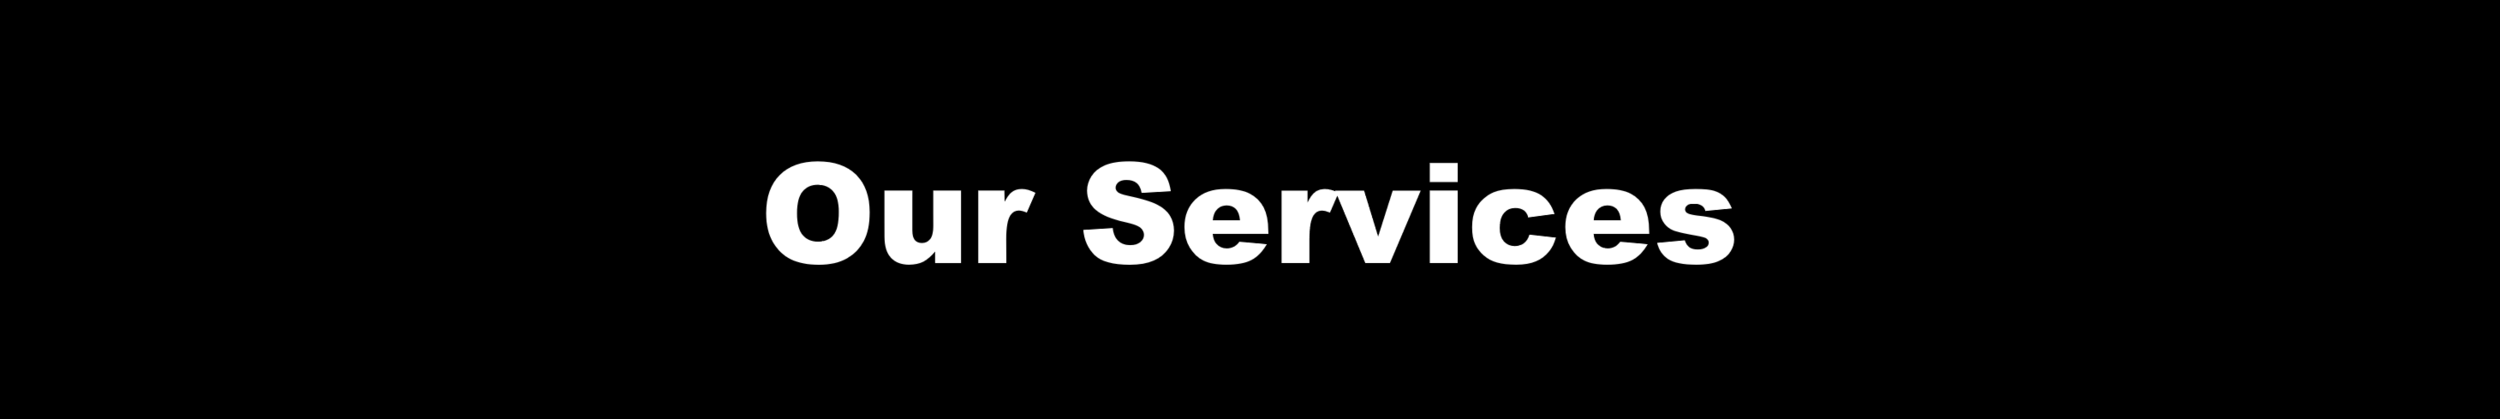 Employer Page- our services banner.PNG